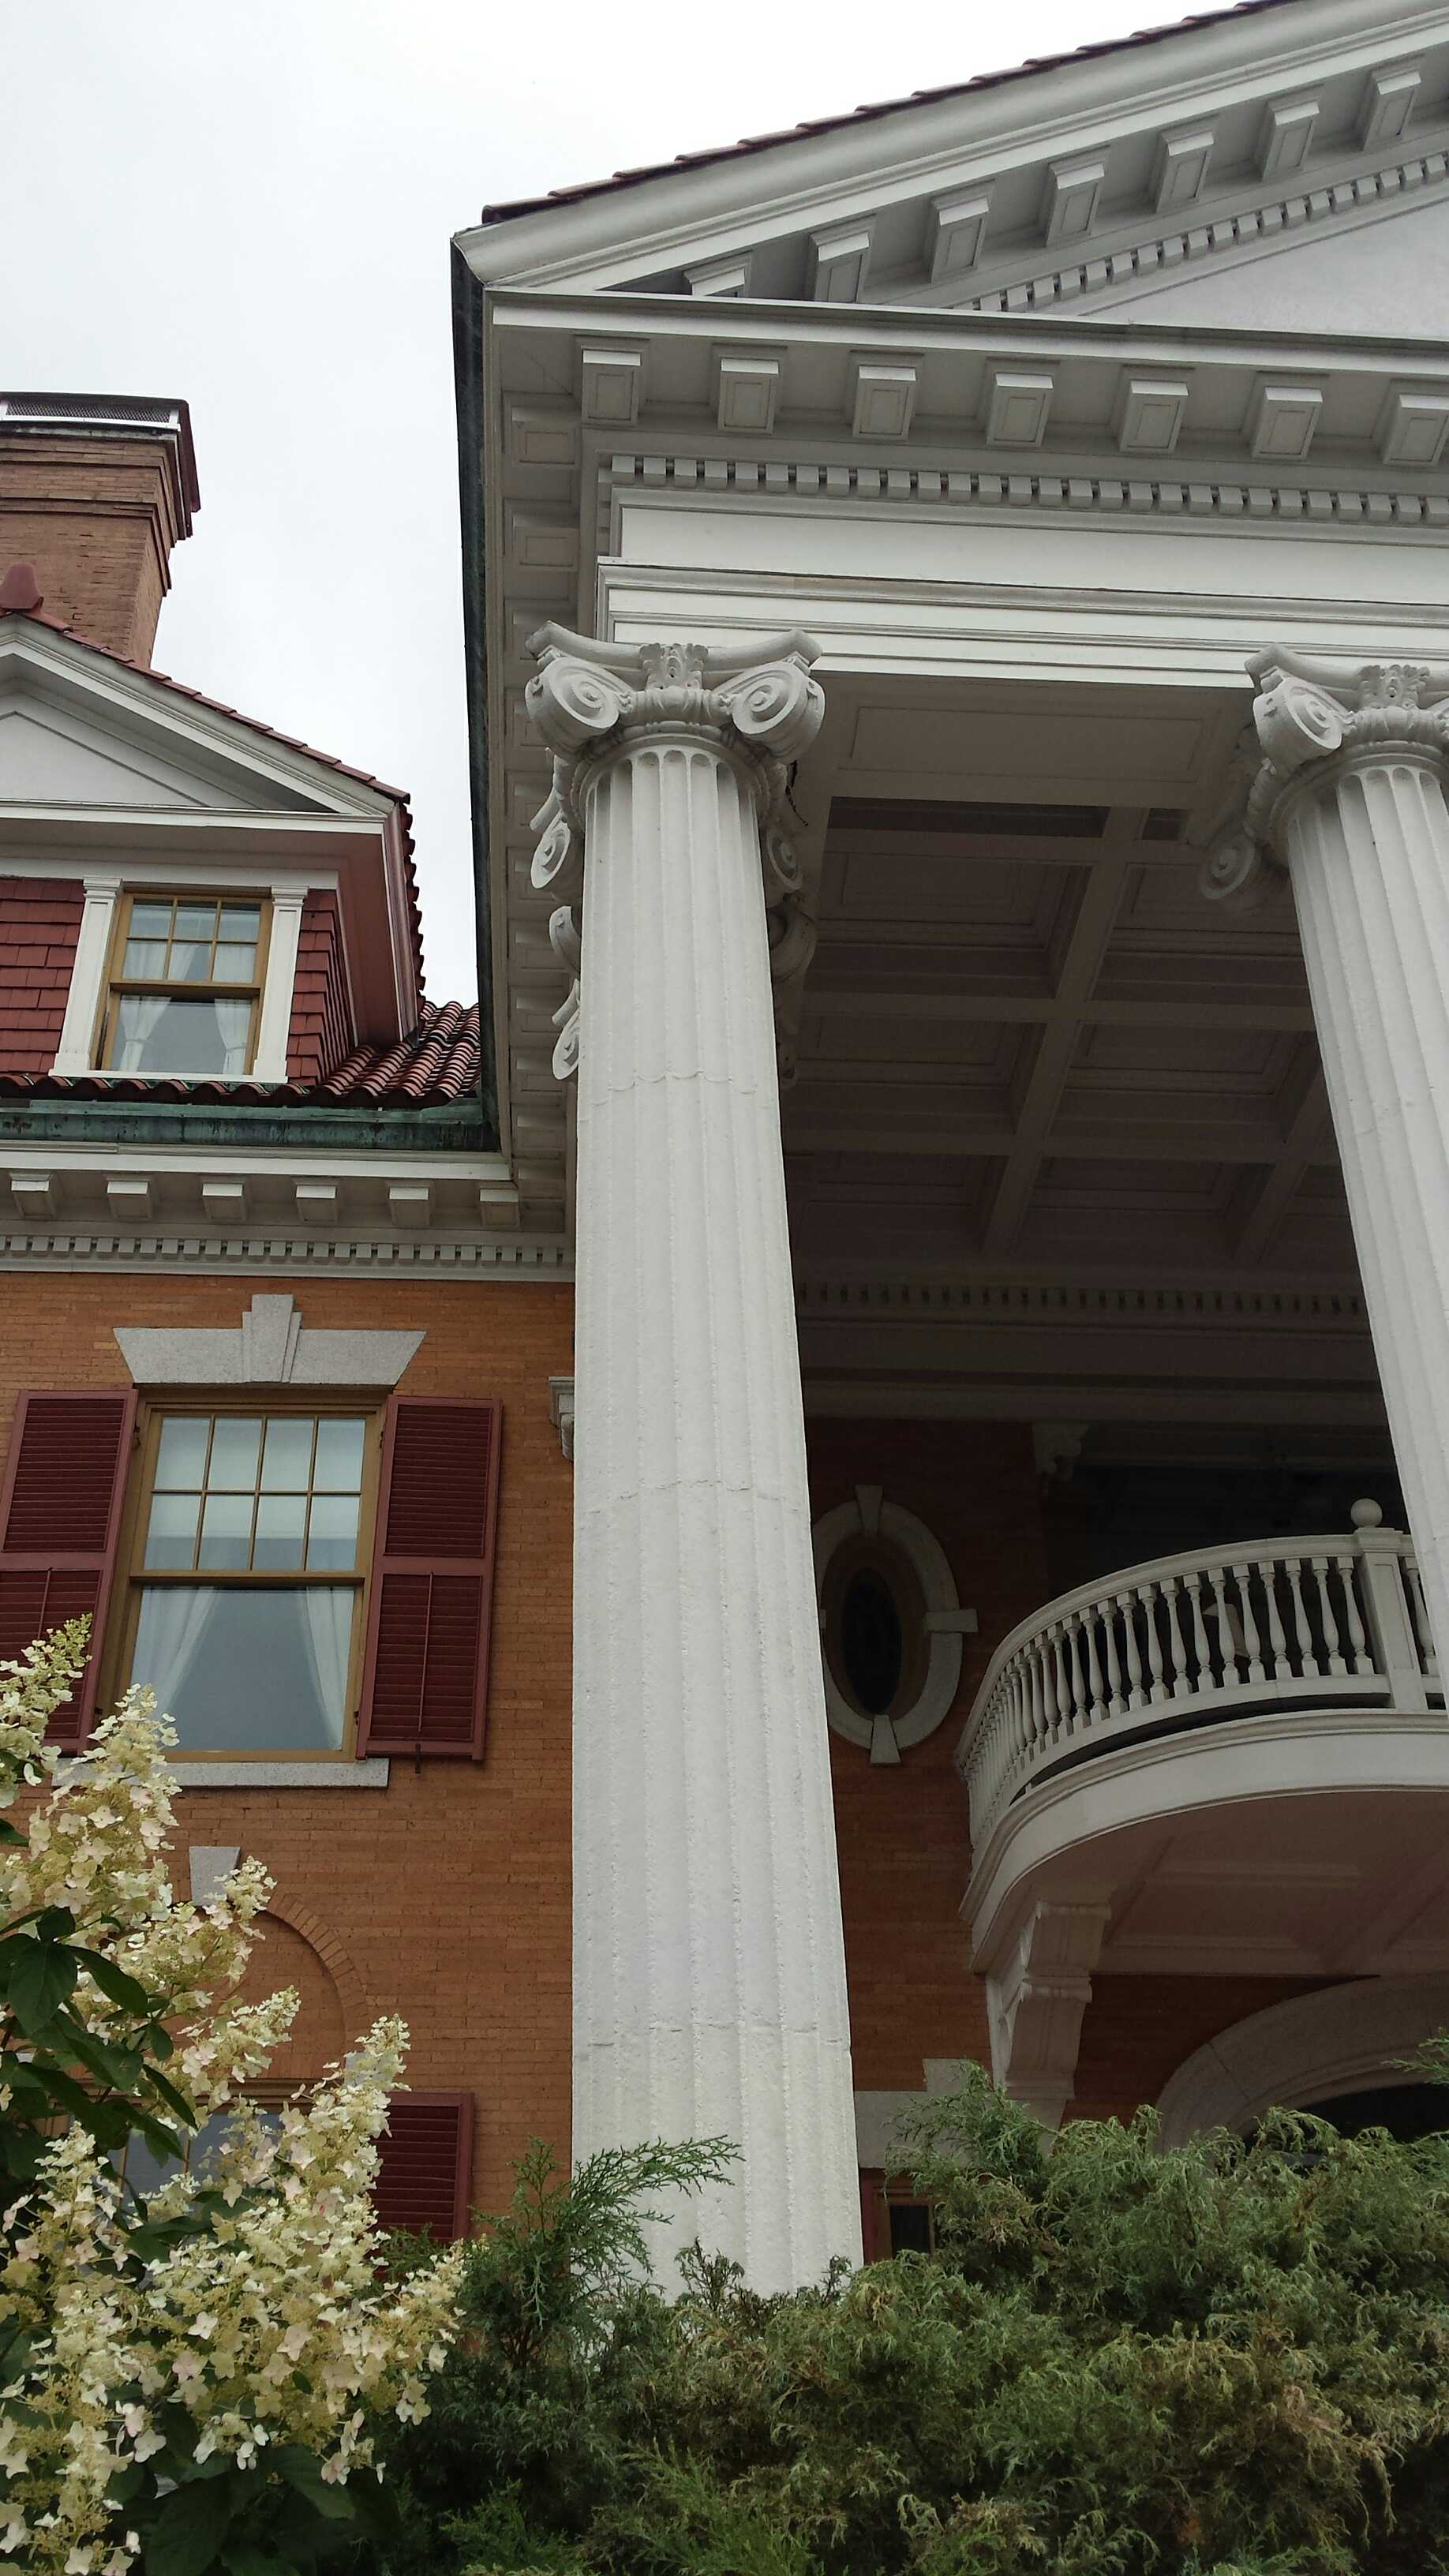 Adding a balcony to a house - Some Truly Awe Inspiring Columns